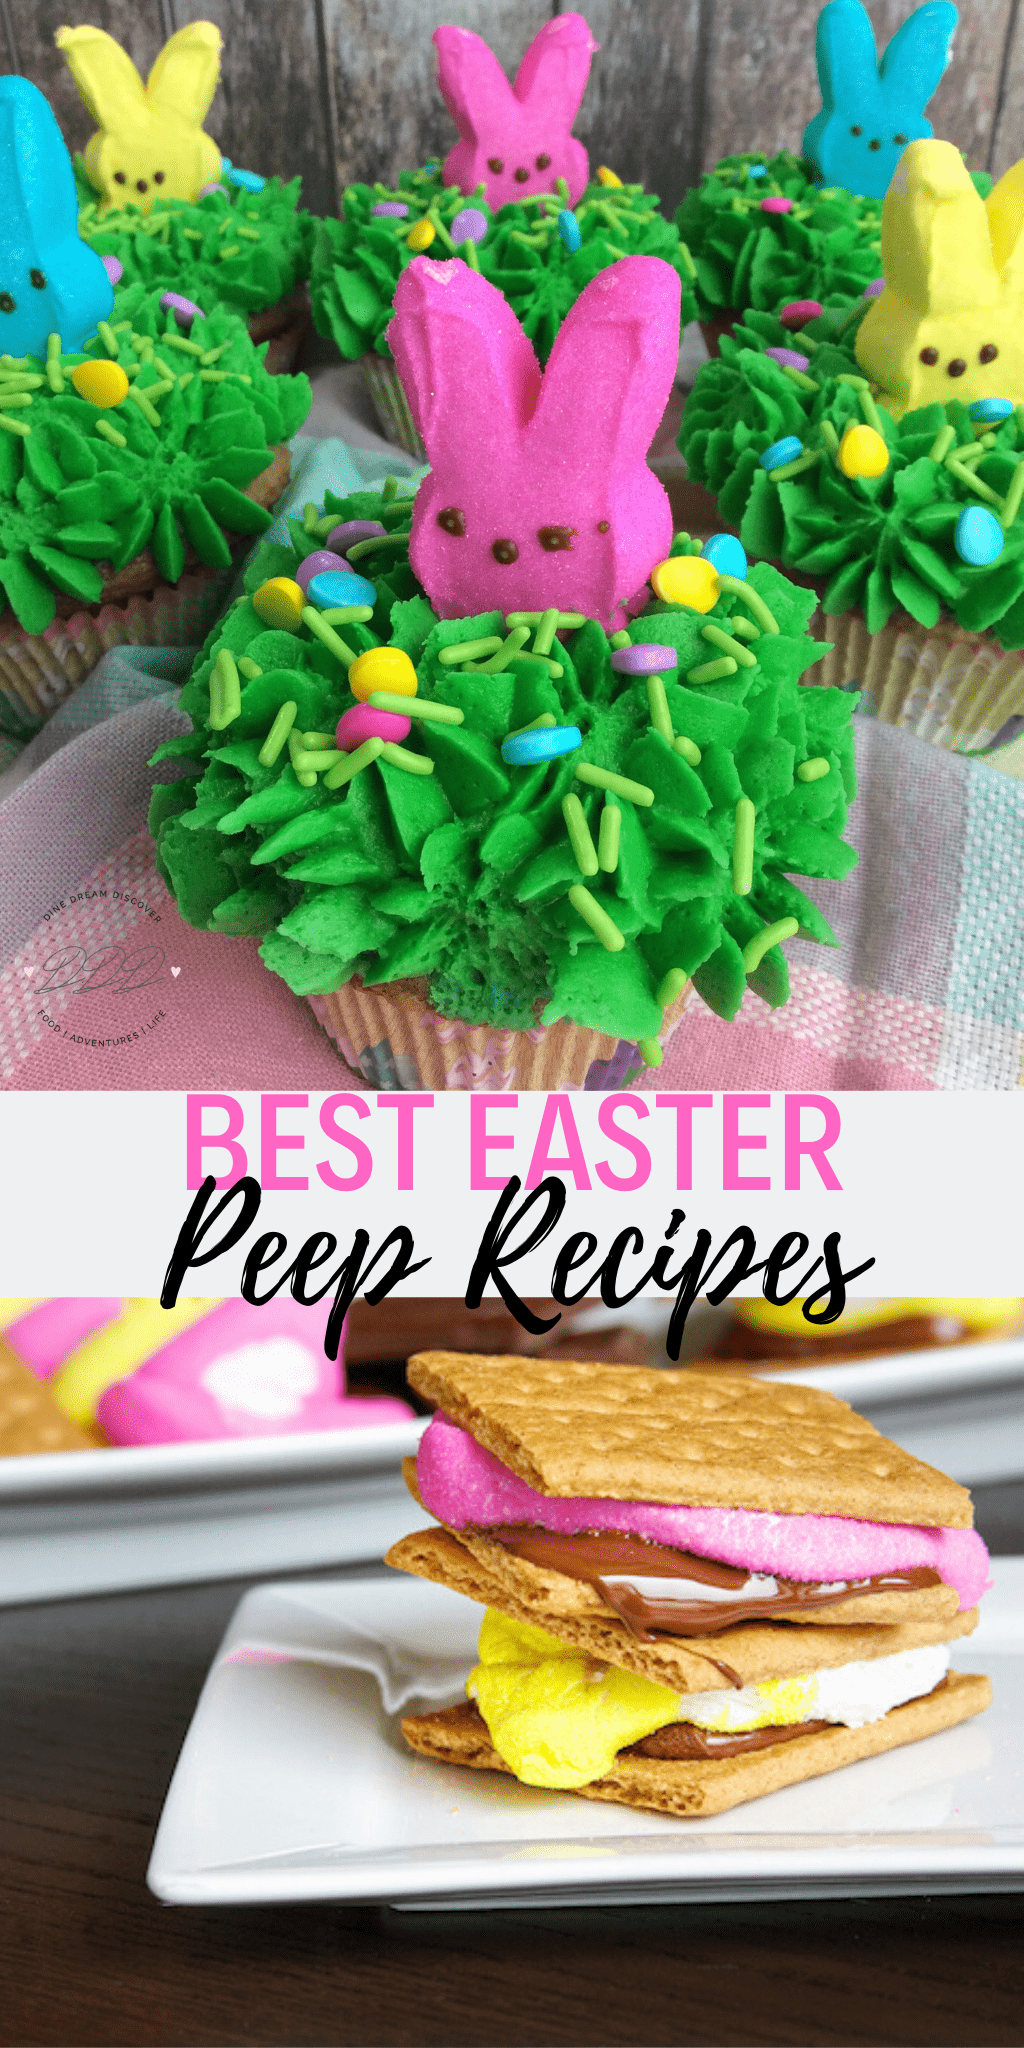 Best Easter Peep Recipes